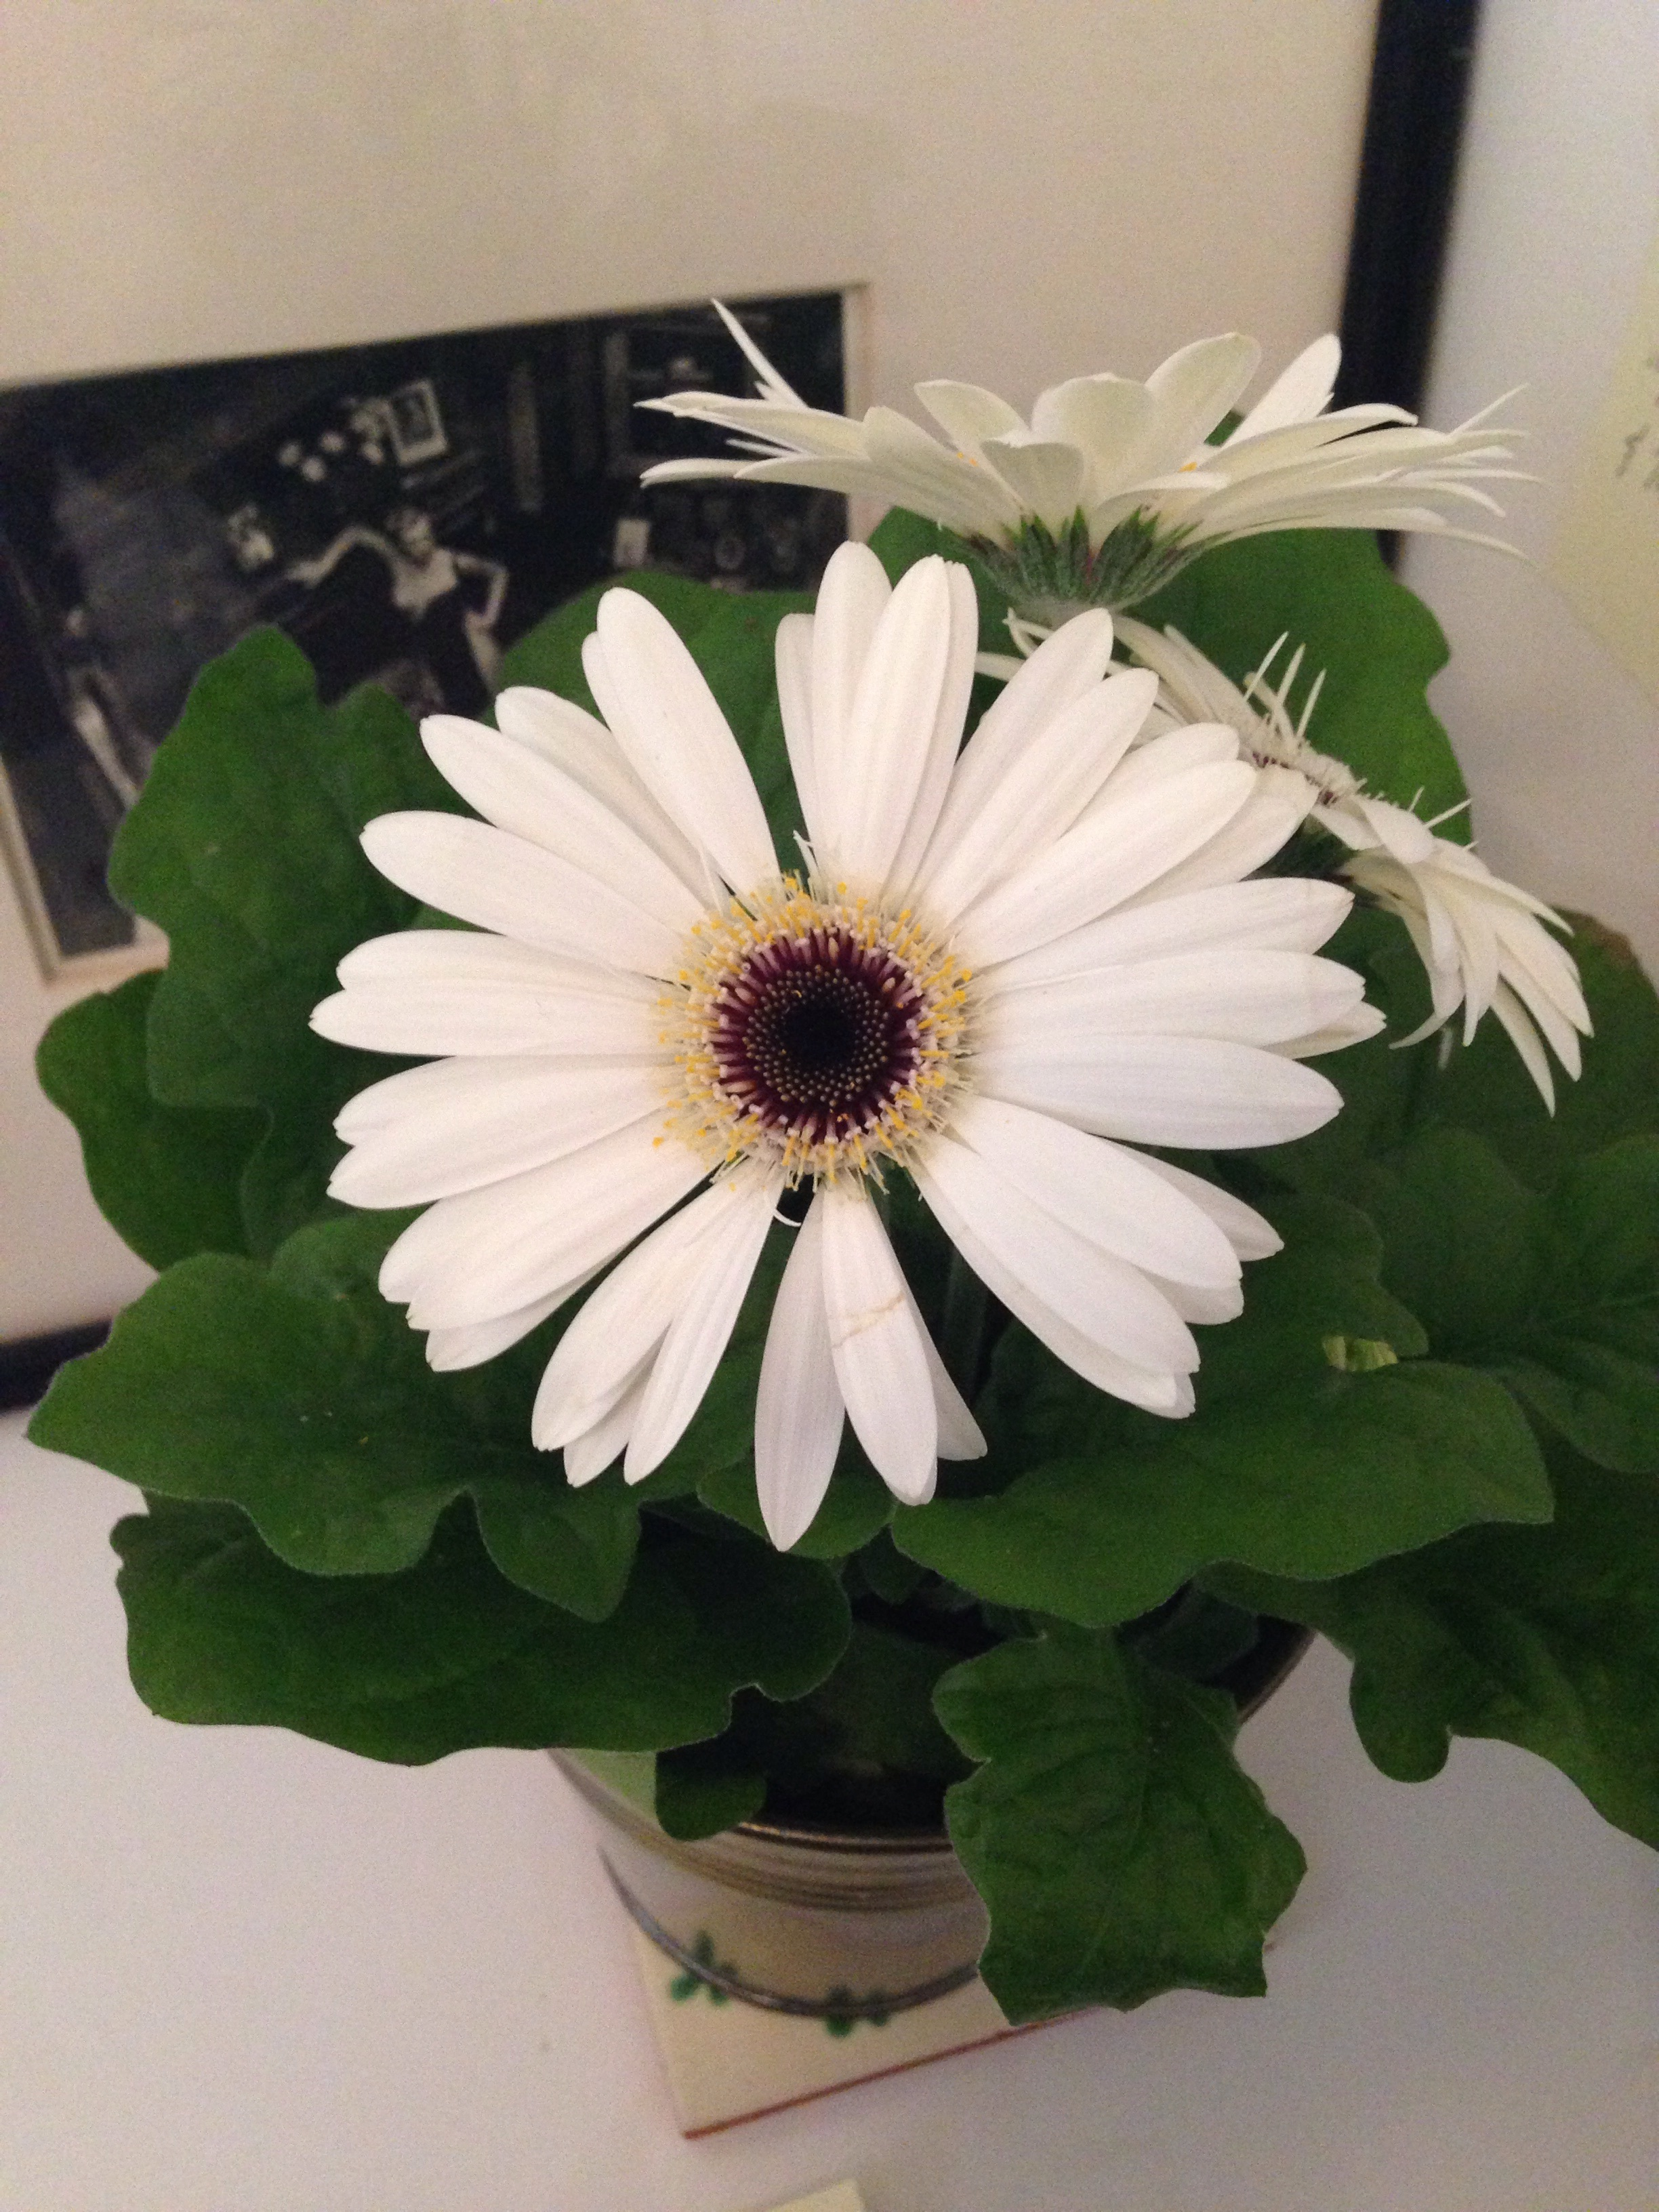 No Poppies available for pix, so this lovely Gerber Daisy stands in...